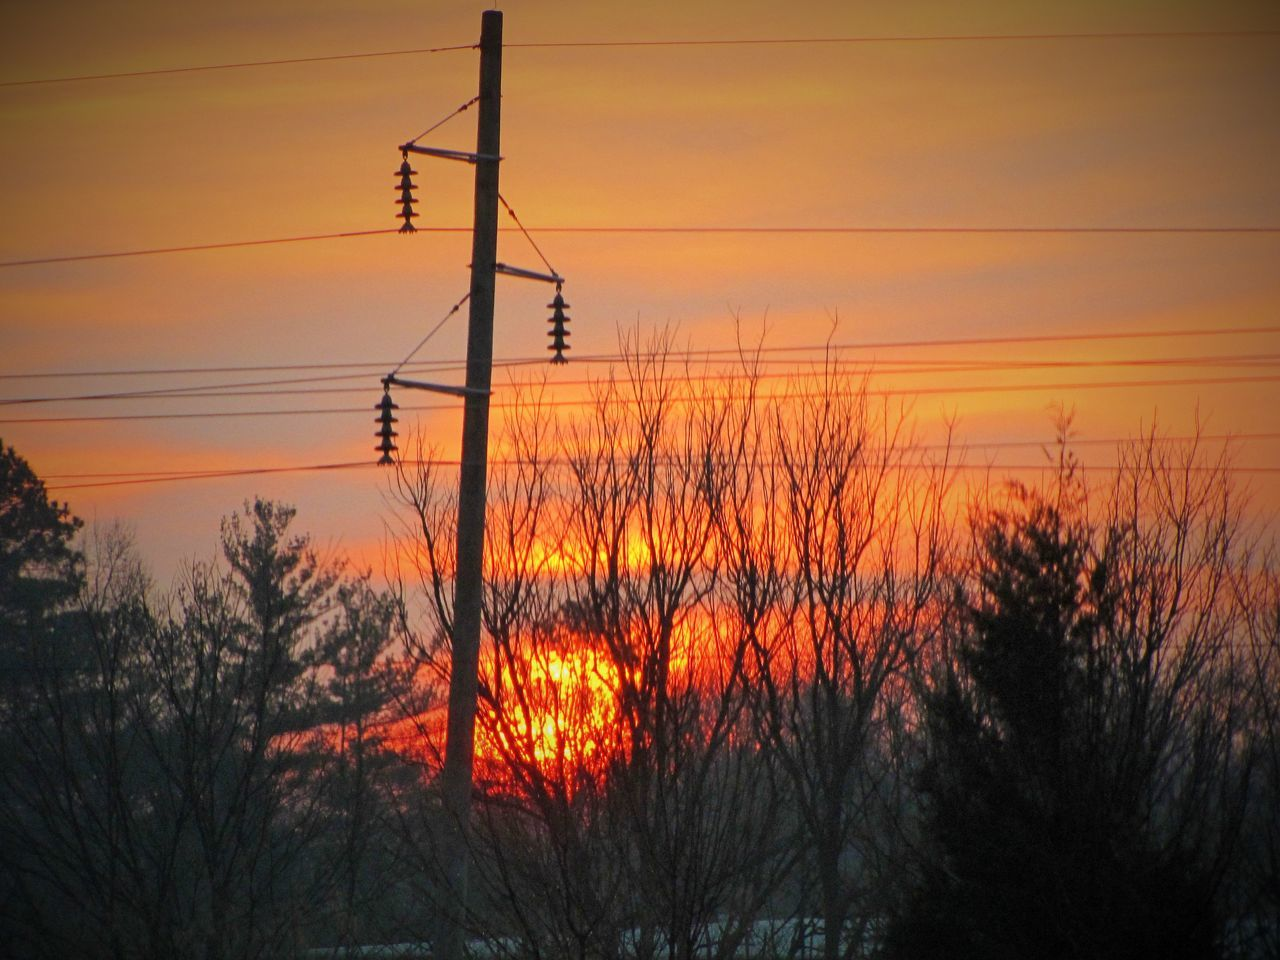 Trees And Power Lines At Sunset